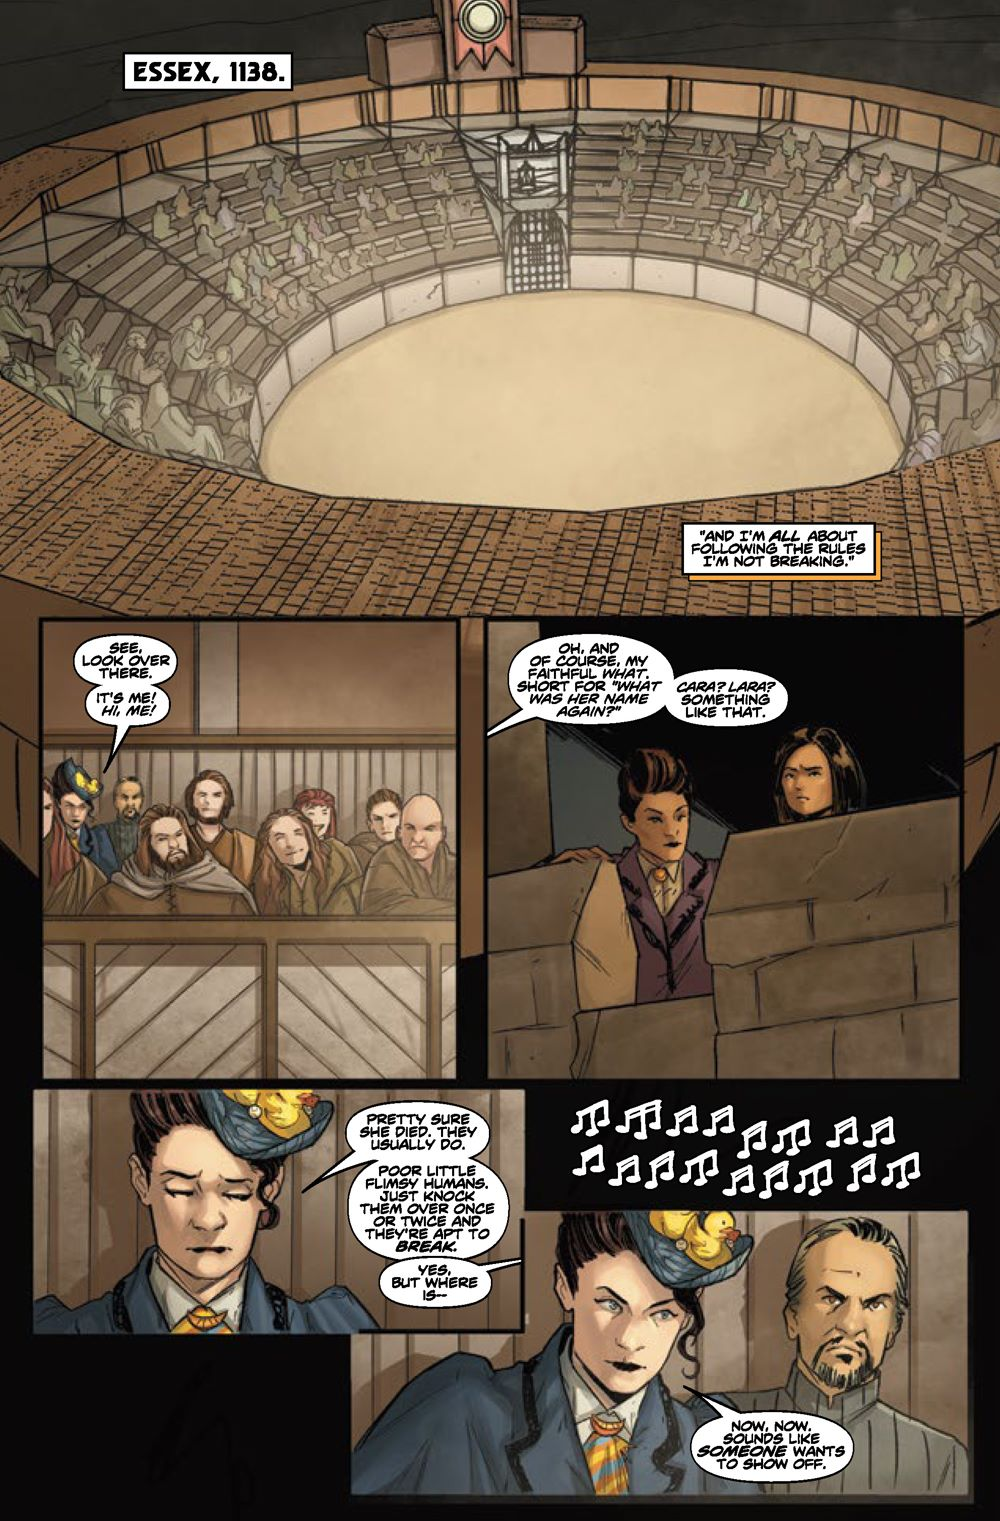 Pages-from-Doctor-Who-Missy-3-Review-pdf_Page_3-1 ComicList Previews: DOCTOR WHO MISSY #3